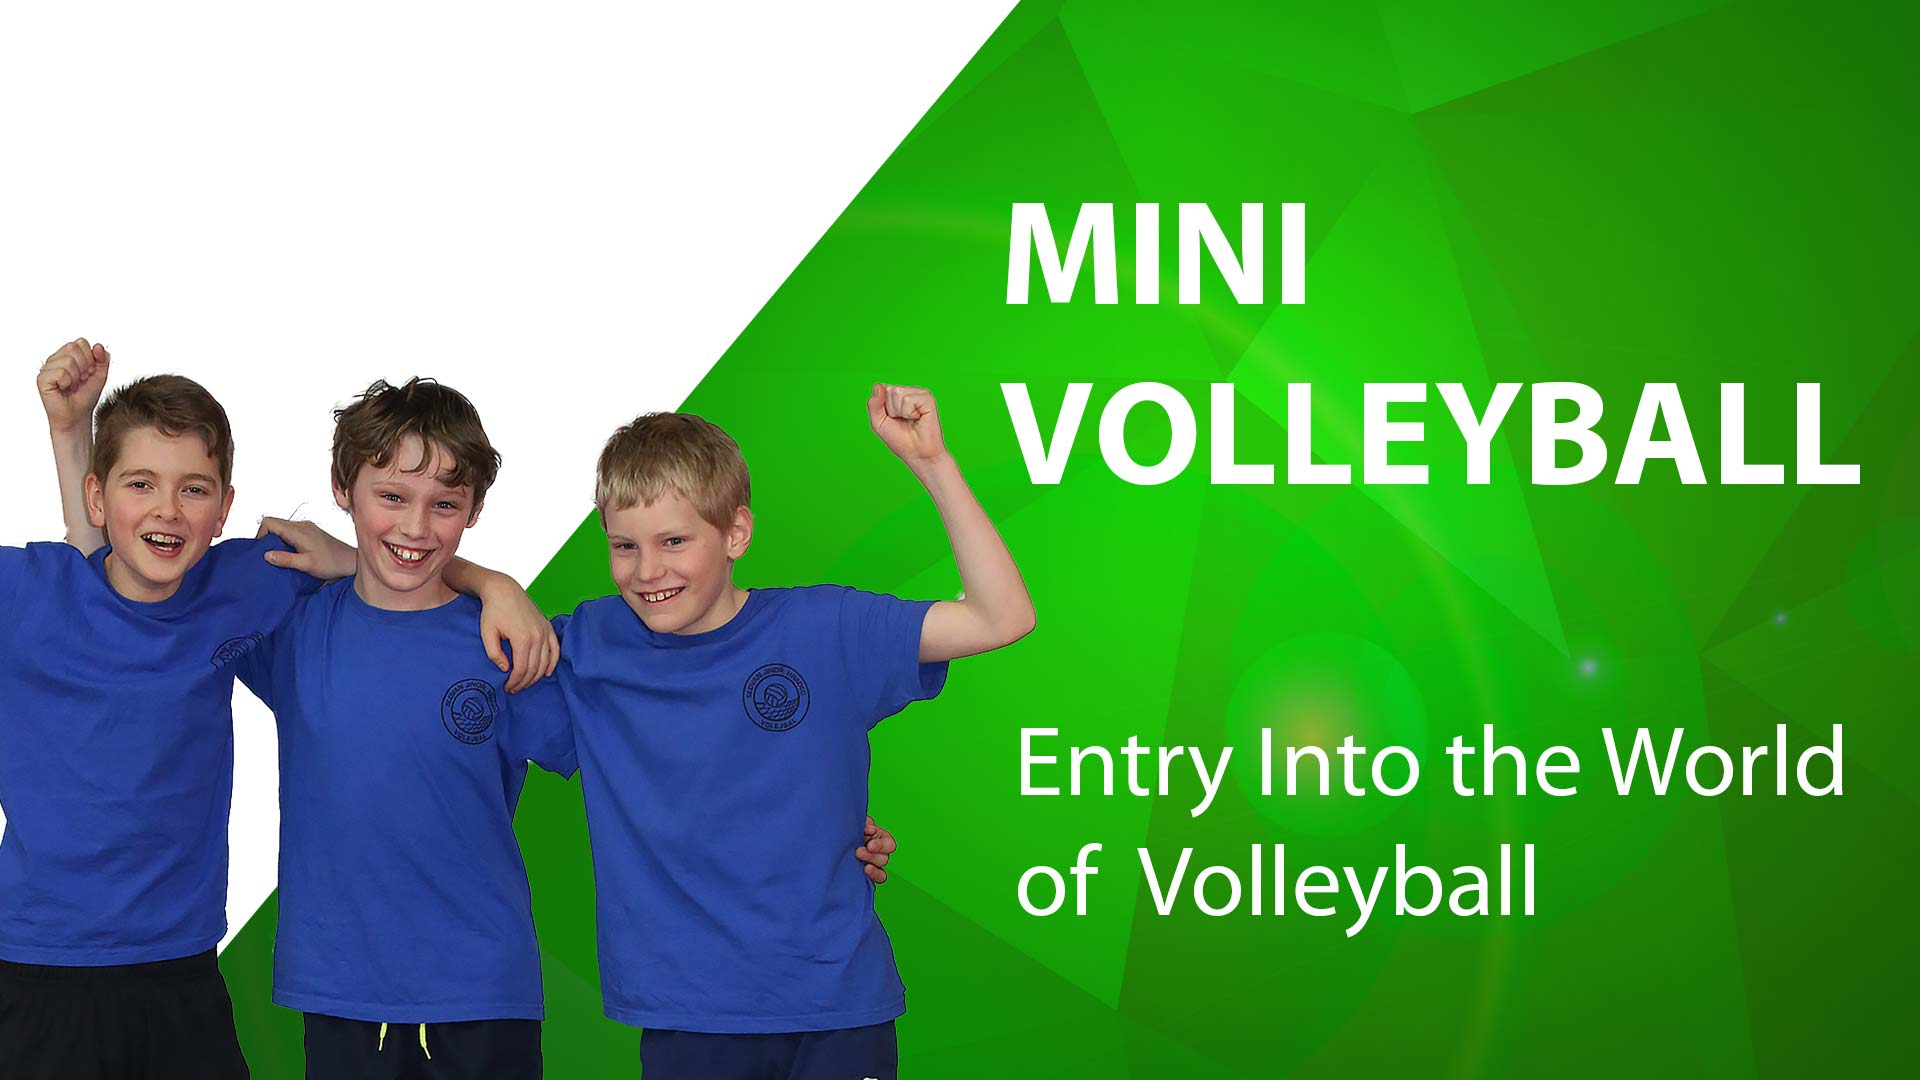 Mini Volleyball | Entry Into the World of Volleyball